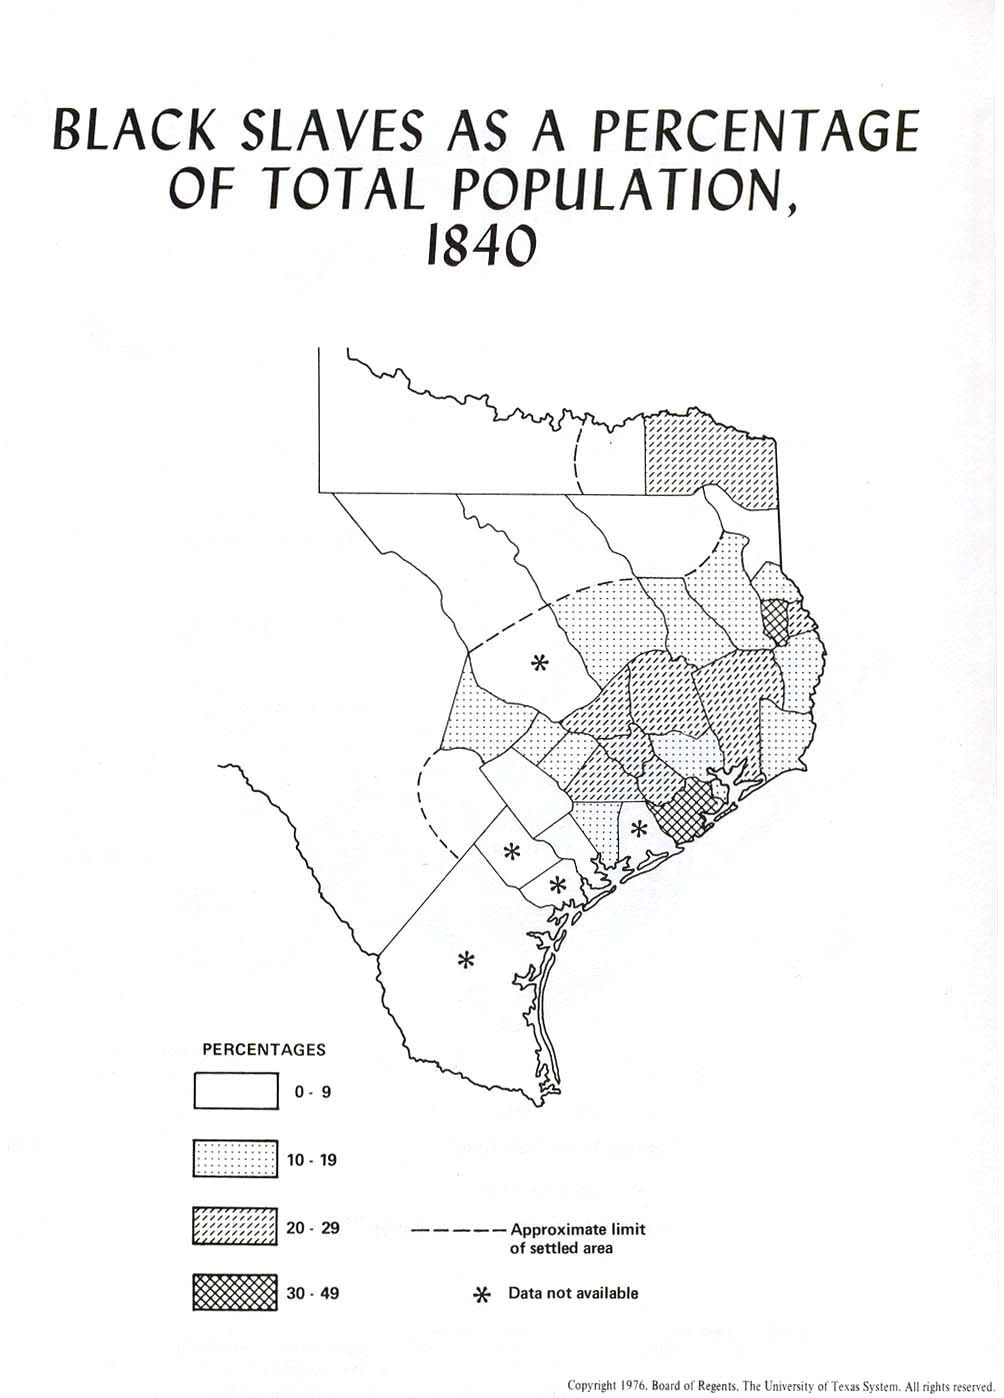 Map Of Texas 1840.Black Slaves As A Percentage Of The Total Population Of Texas In